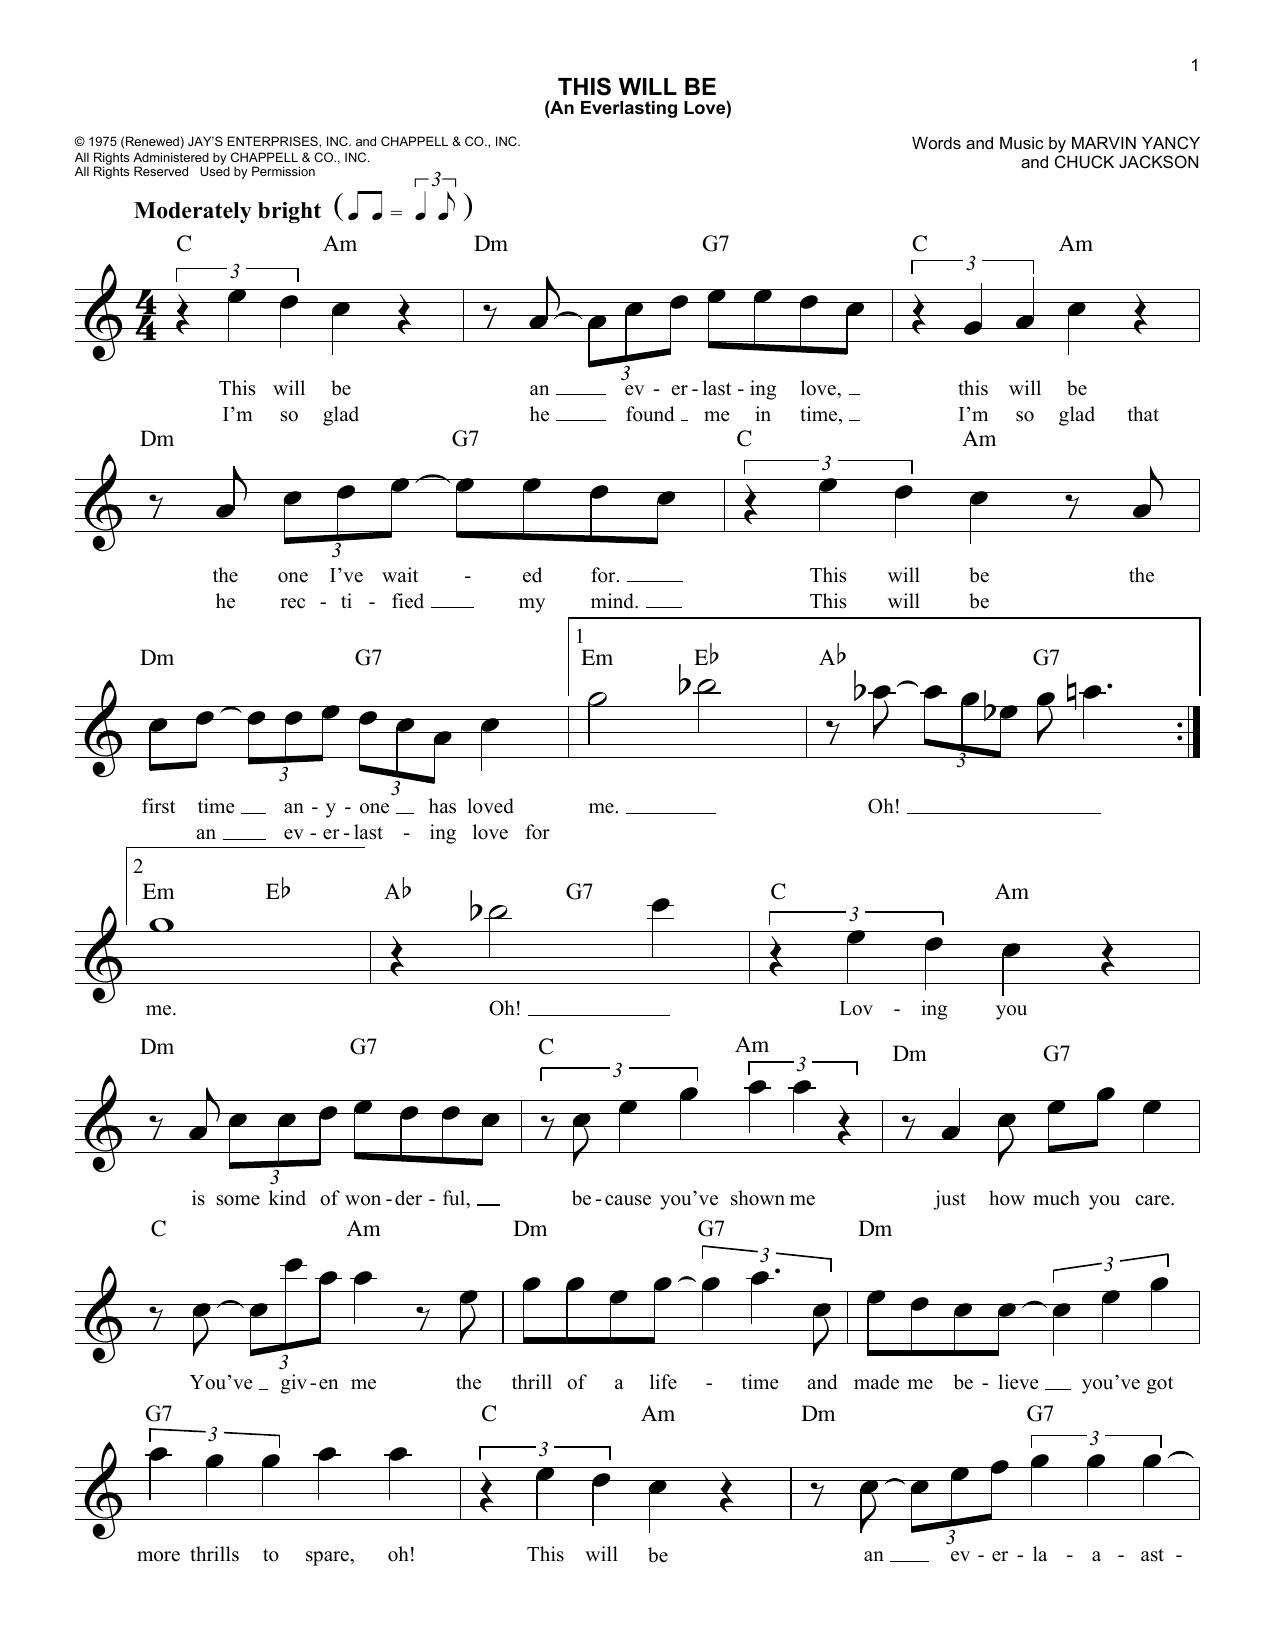 natalie from me natalie piano vocal sheet music